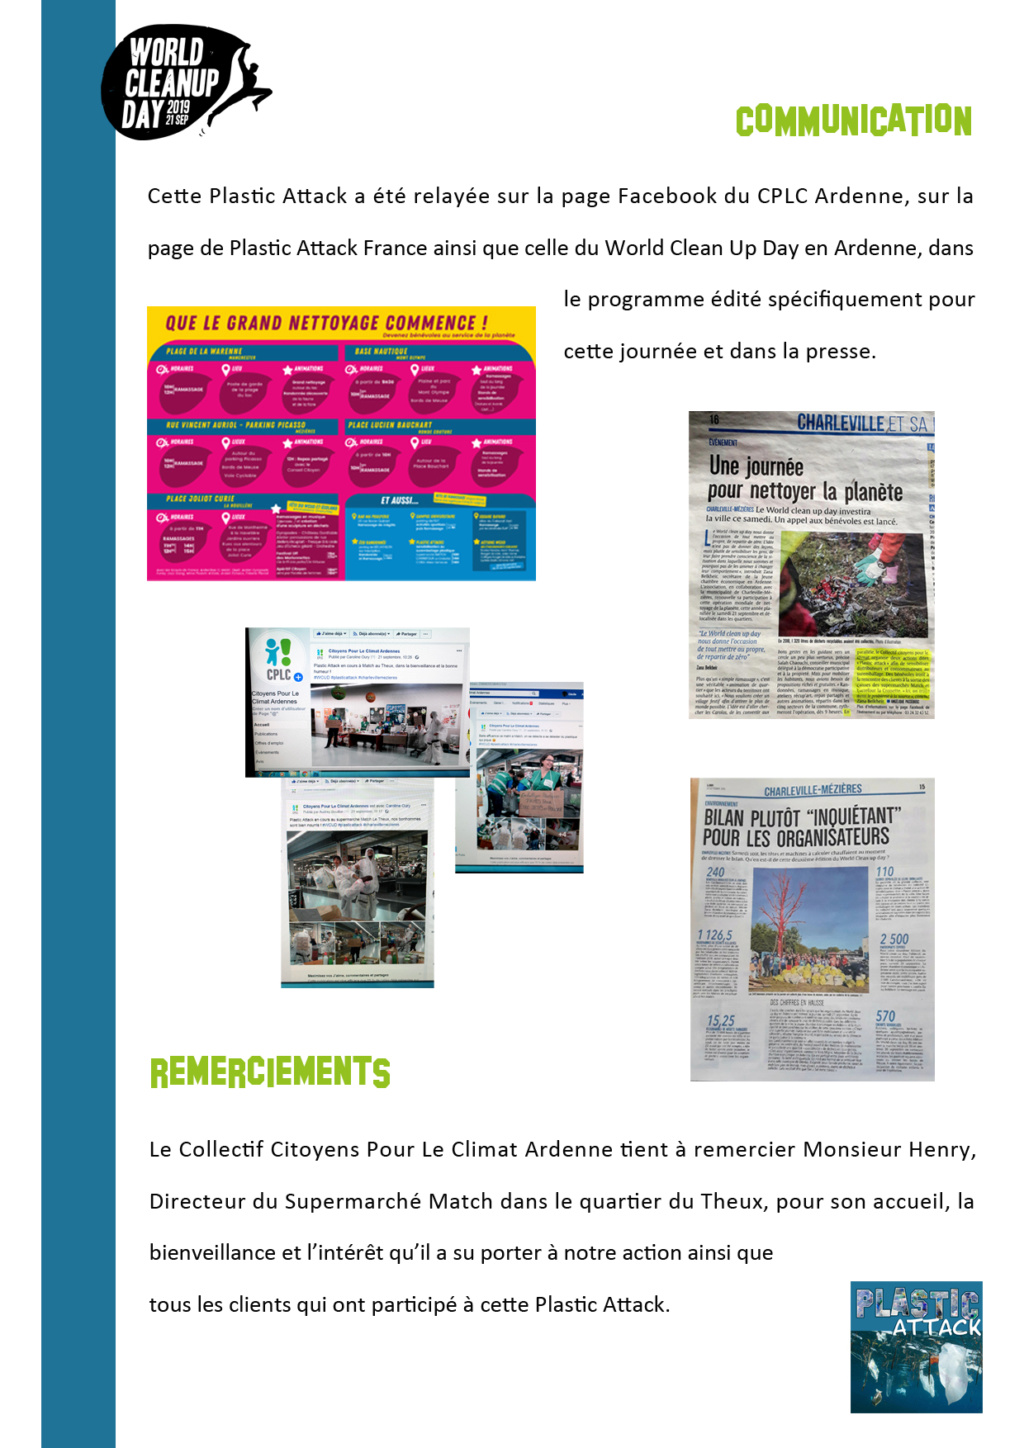 21/09/19 des plastics attacks en co-organisation avec le World Clean Up Day Ardennes  - Page 2 Bilan_14